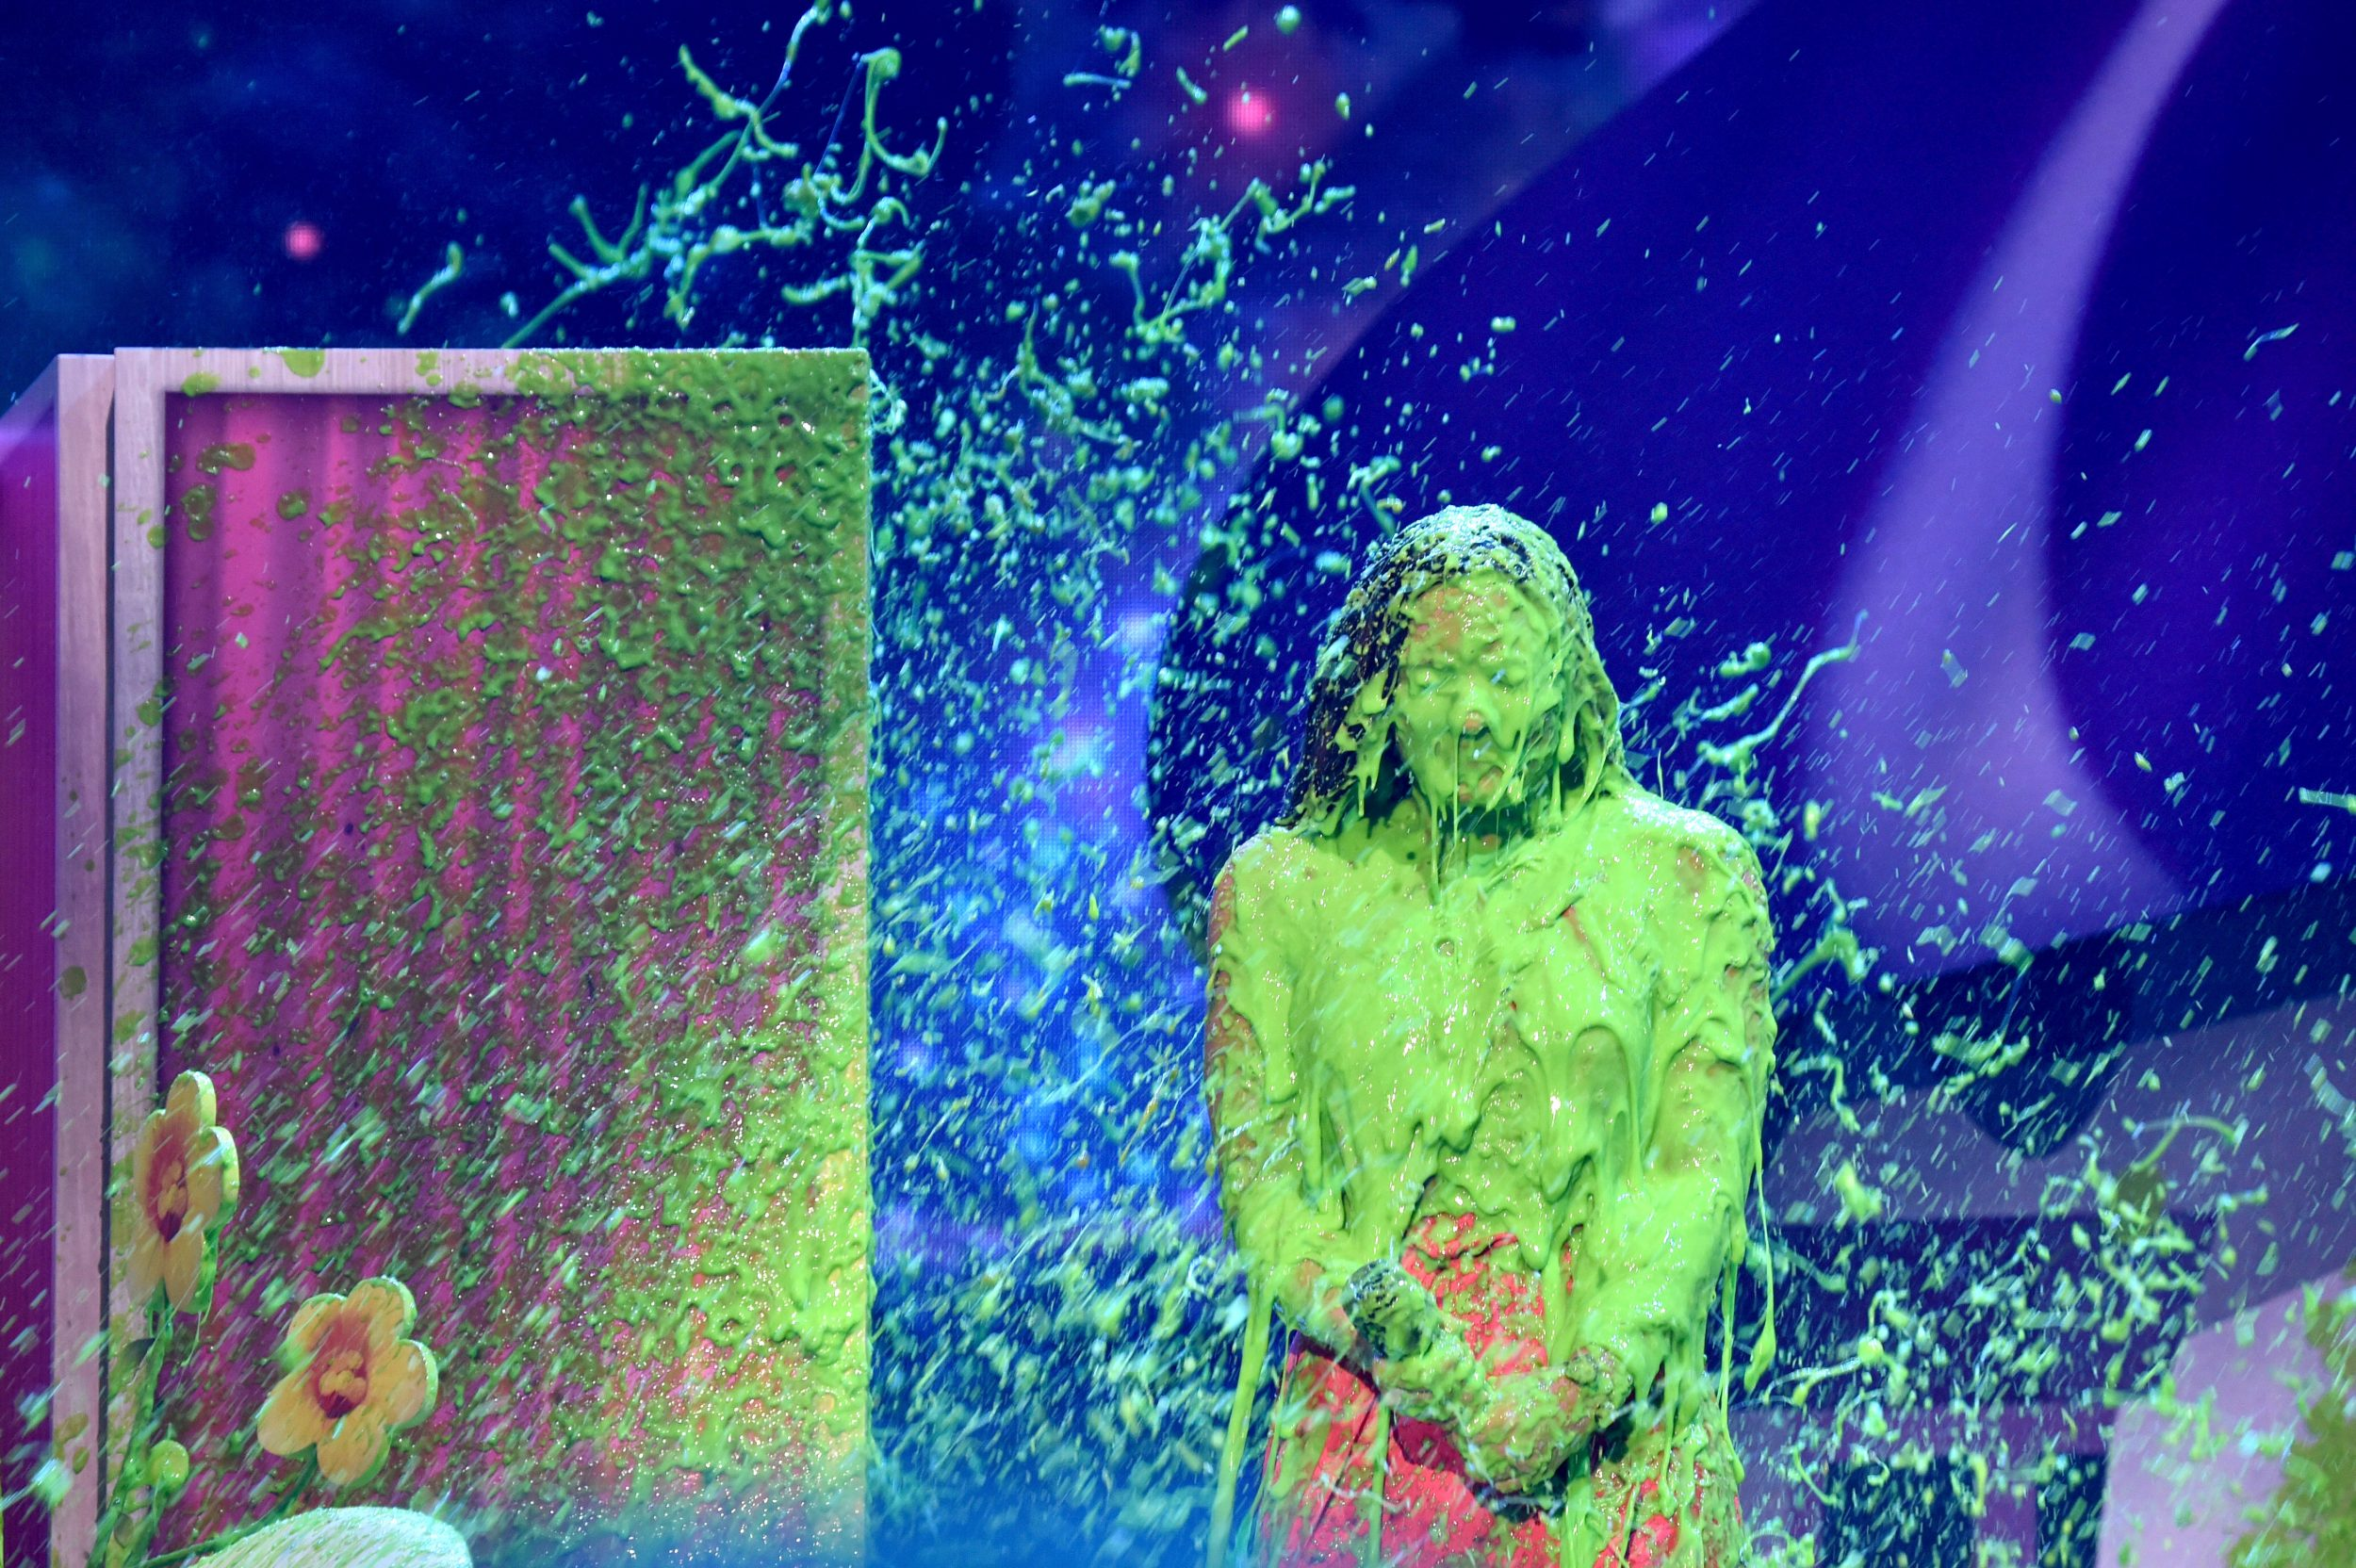 LOS ANGELES, CA - MARCH 11:  Singer Demi Lovato gets slimed onstage at Nickelodeon's 2017 Kids' Choice Awards at USC Galen Center on March 11, 2017 in Los Angeles, California.  (Photo by Frazer Harrison/KCA2017/Getty Images for Nickelodeon)